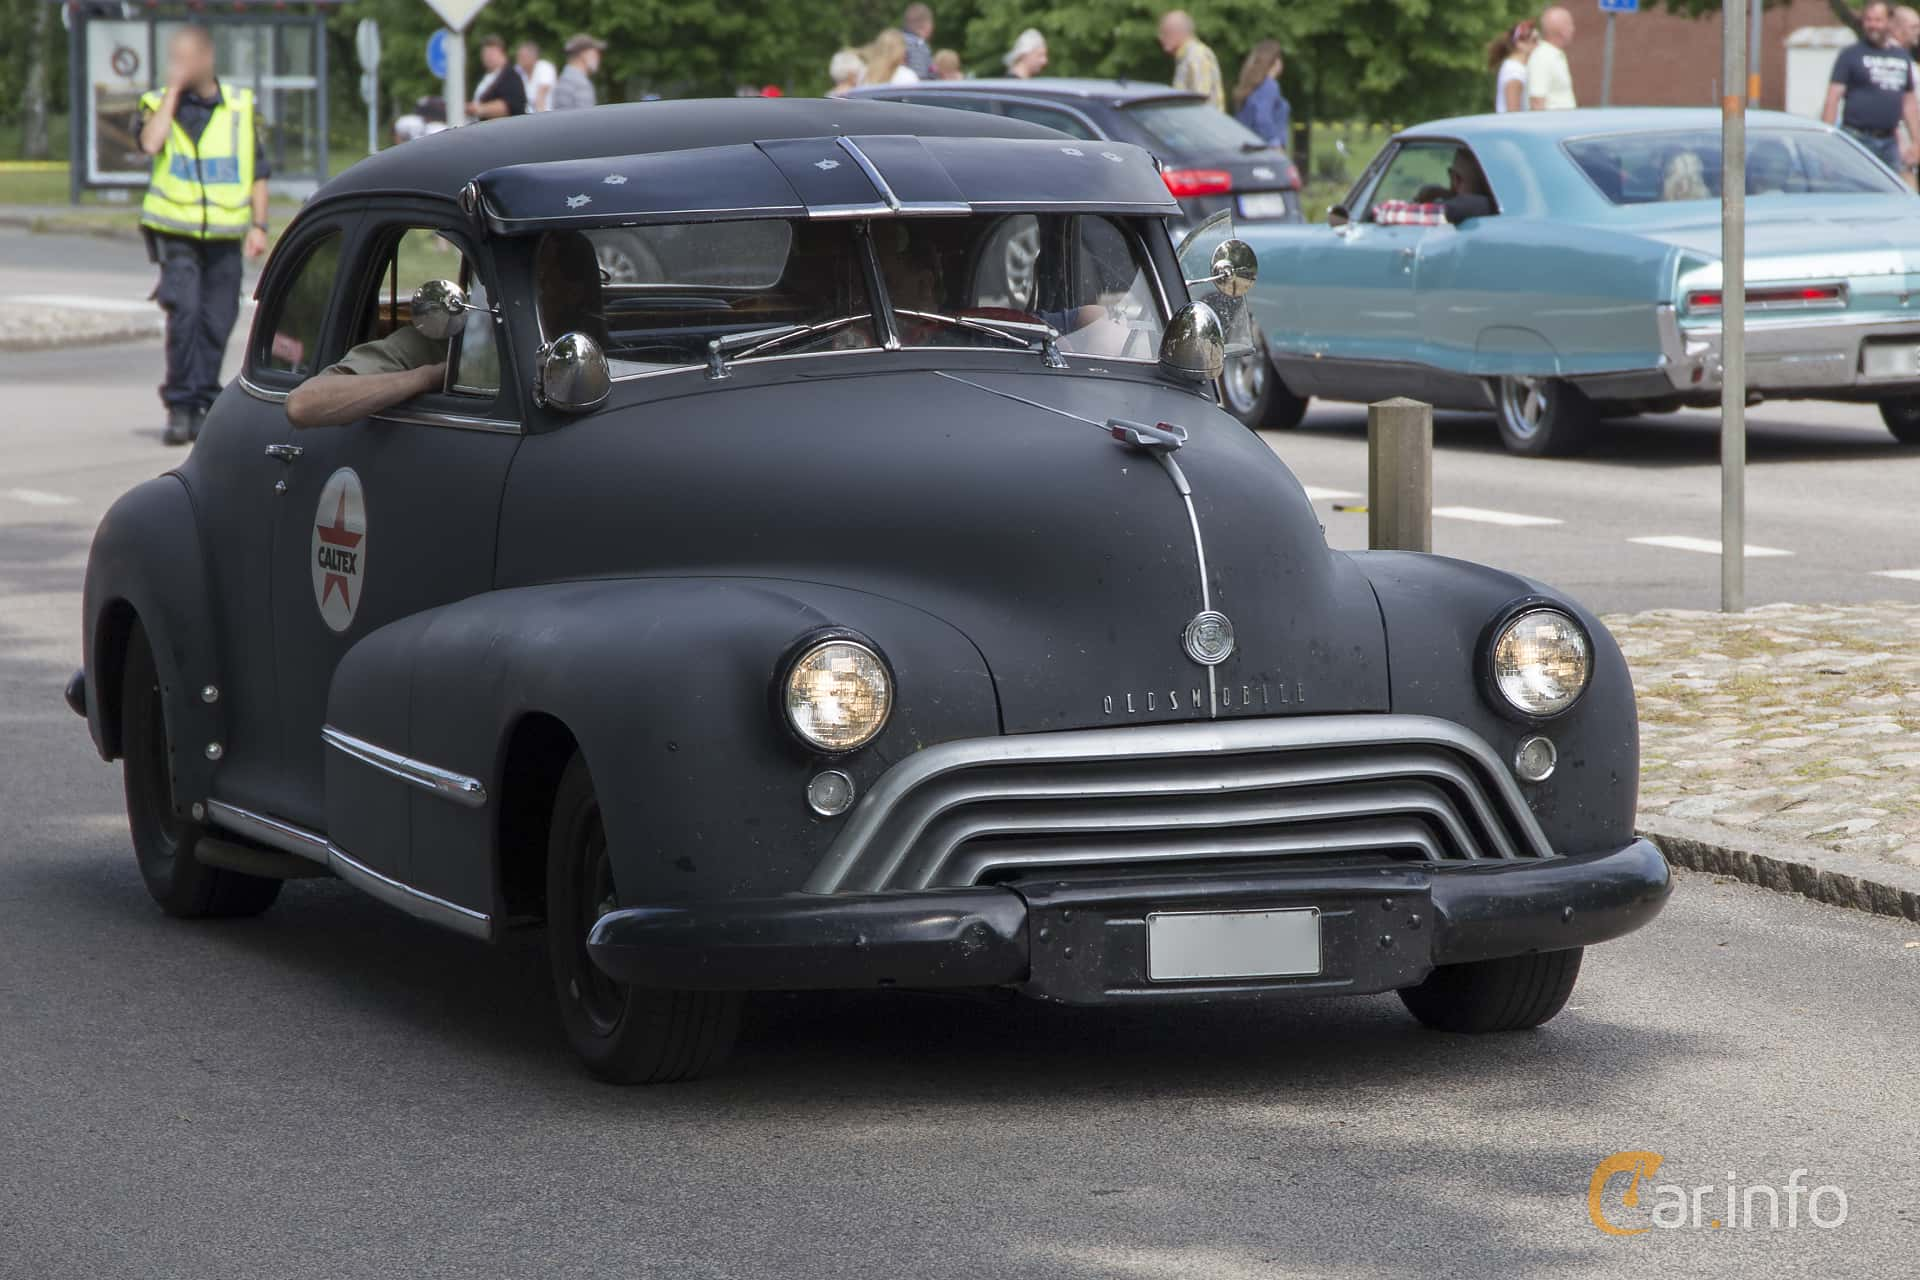 Oldsmobile Dynamic 66 Club Coupé 3.9 Hydra-Matic, 101hp, 1948 at Hässleholm Power Start of Summer Meet 2016